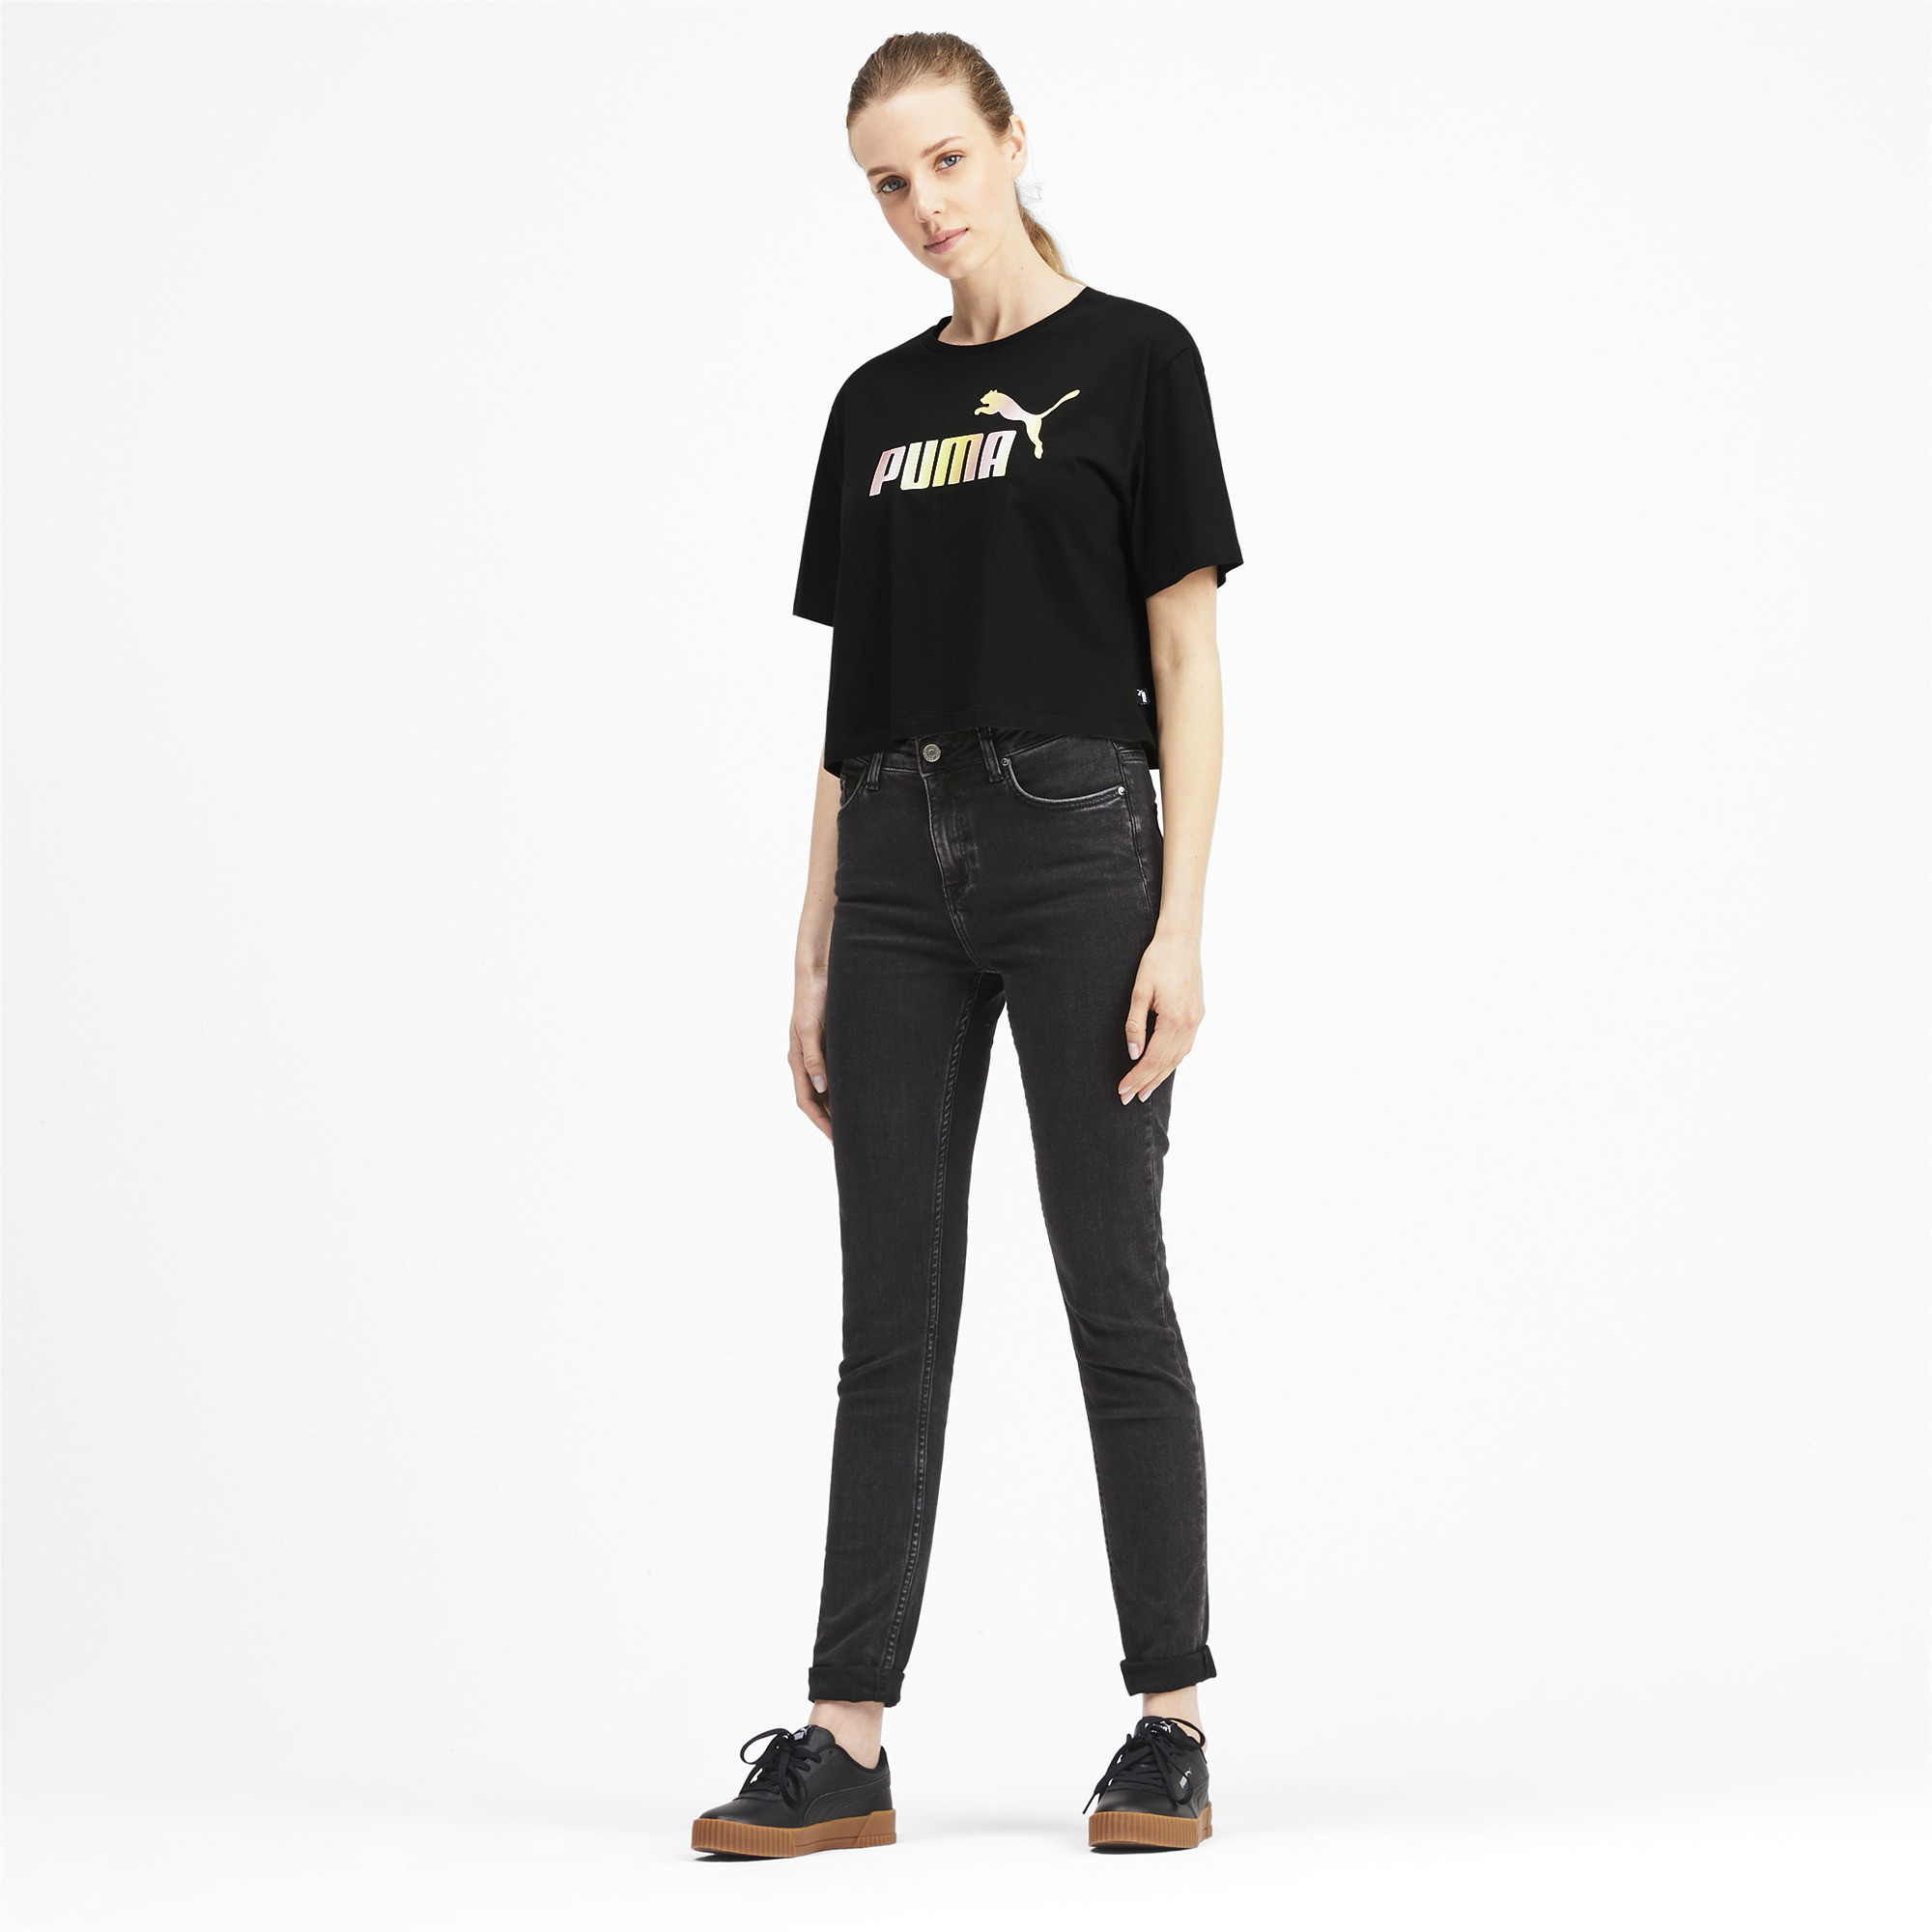 PUMA-Women-039-s-Cropped-Logo-Tee-Women-Crop-Top-Basics thumbnail 18